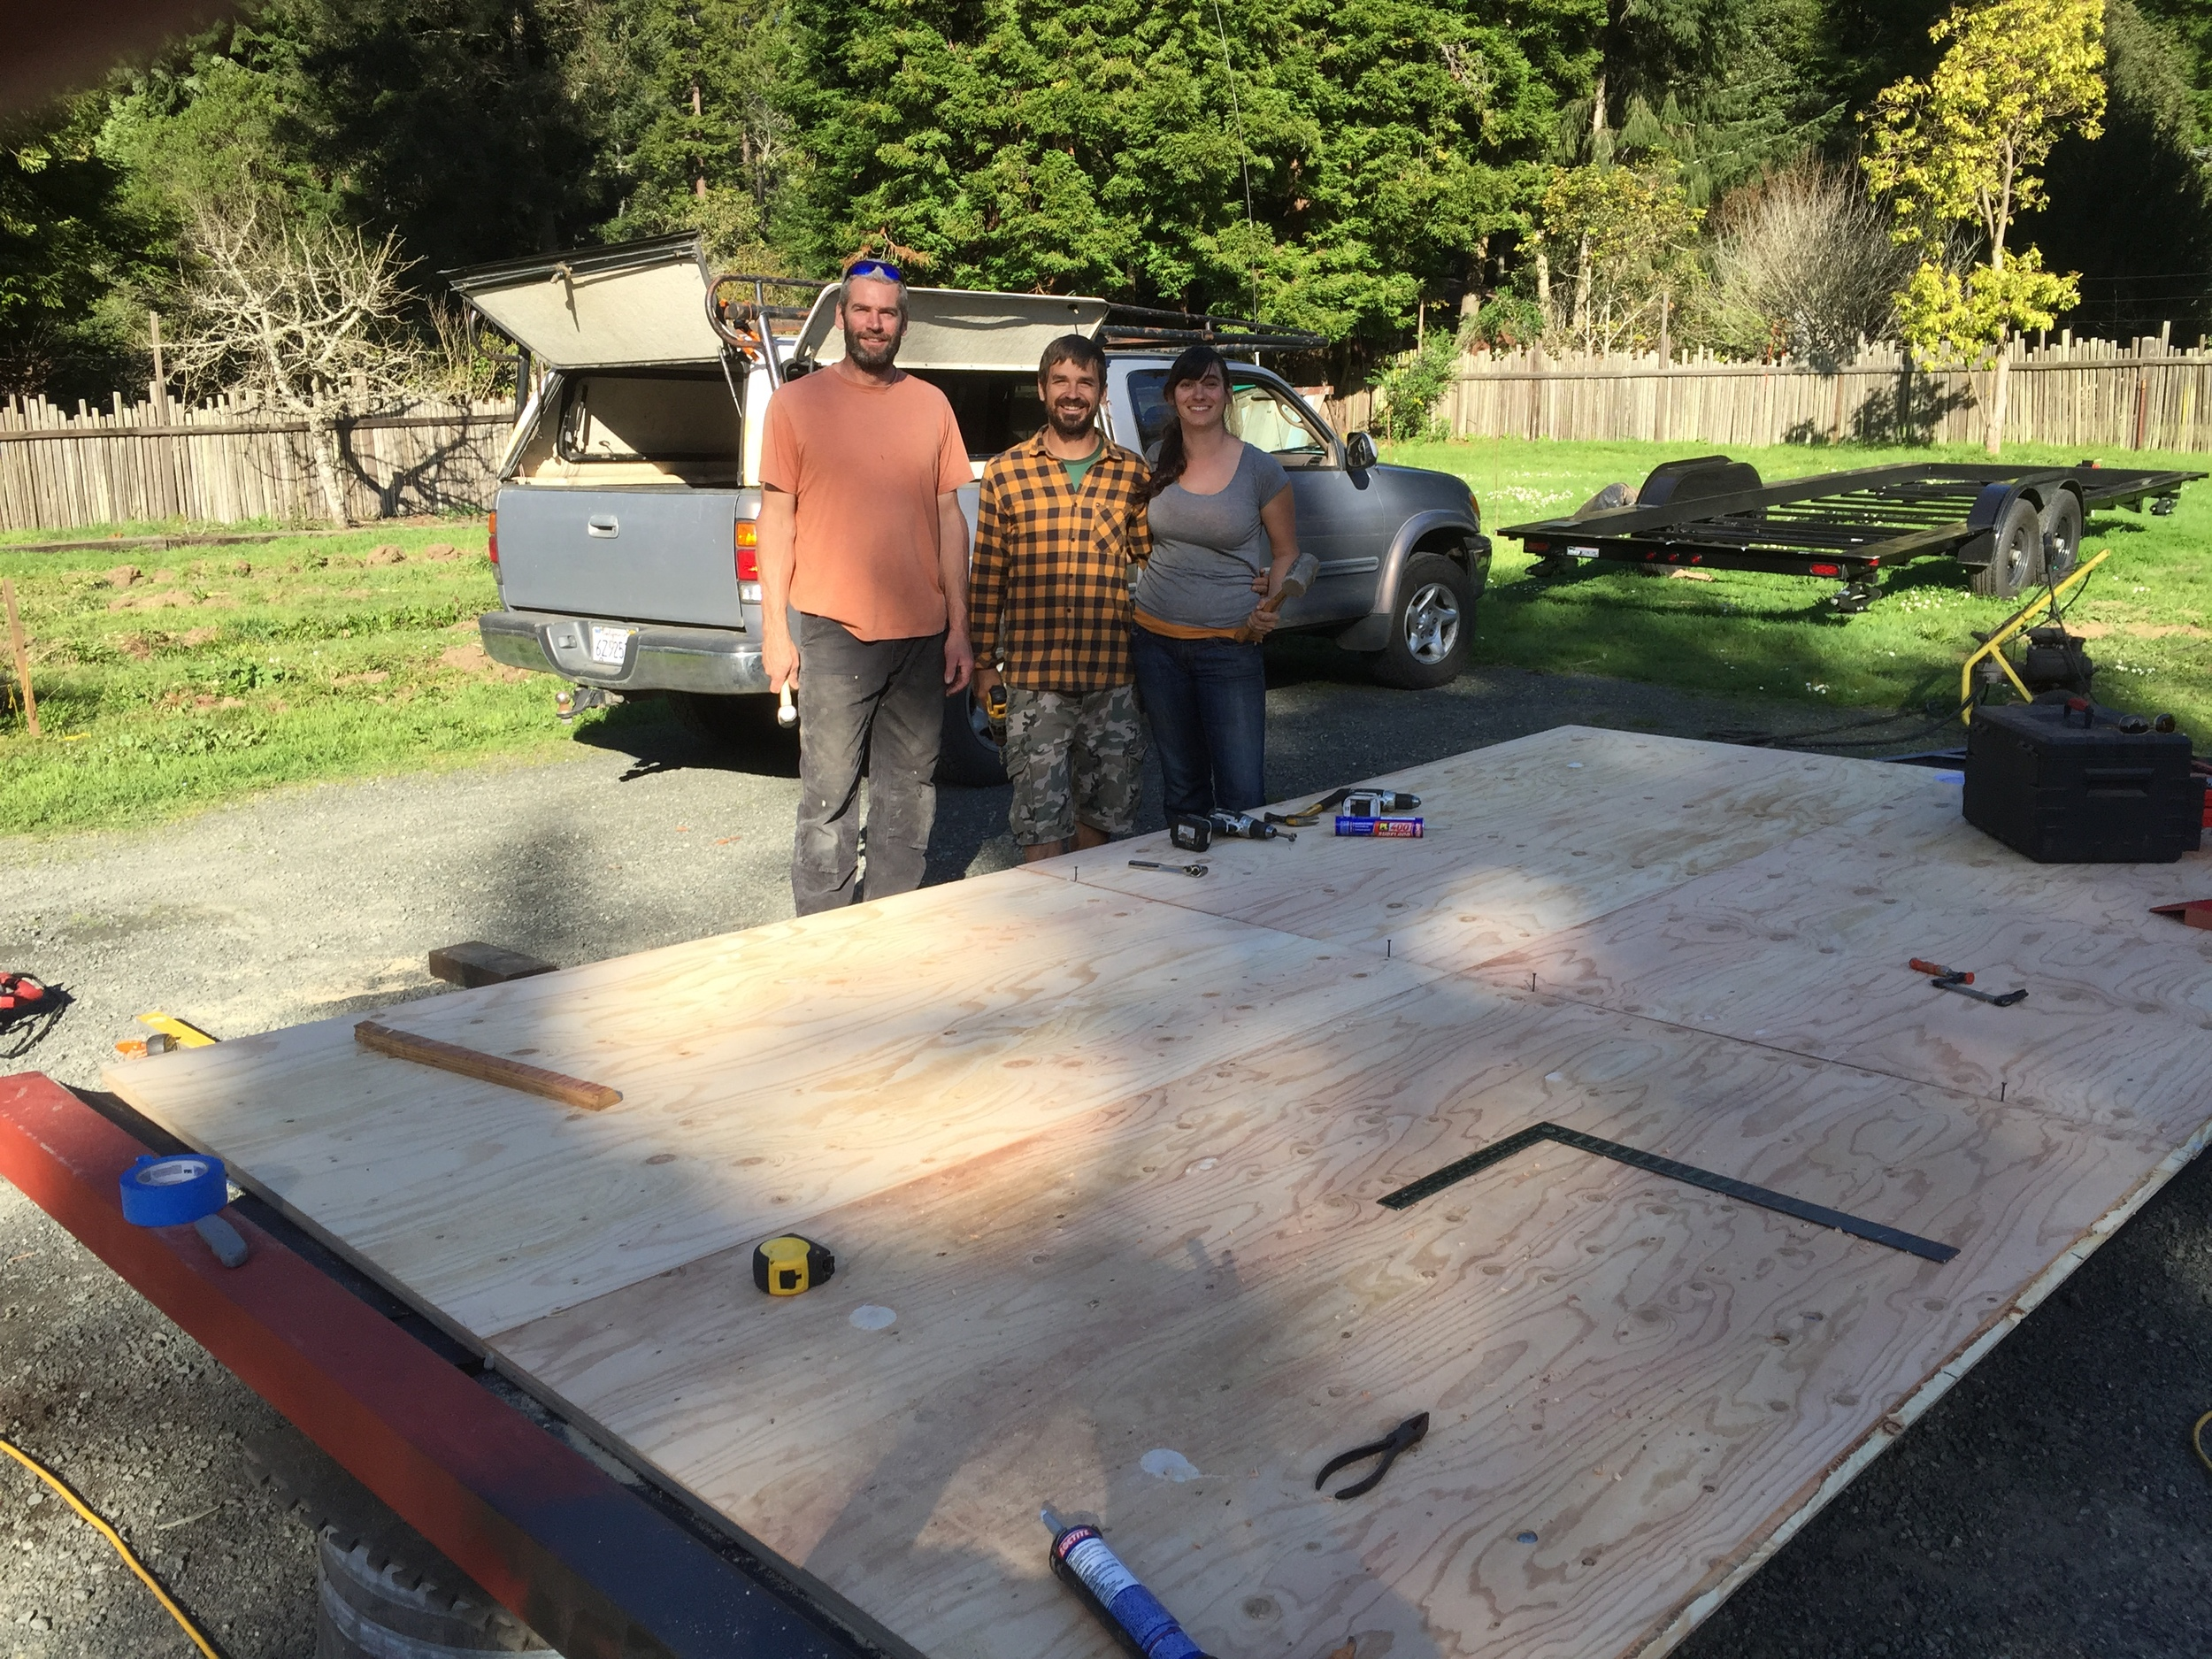 ..and we have a flatbed ready to build on!